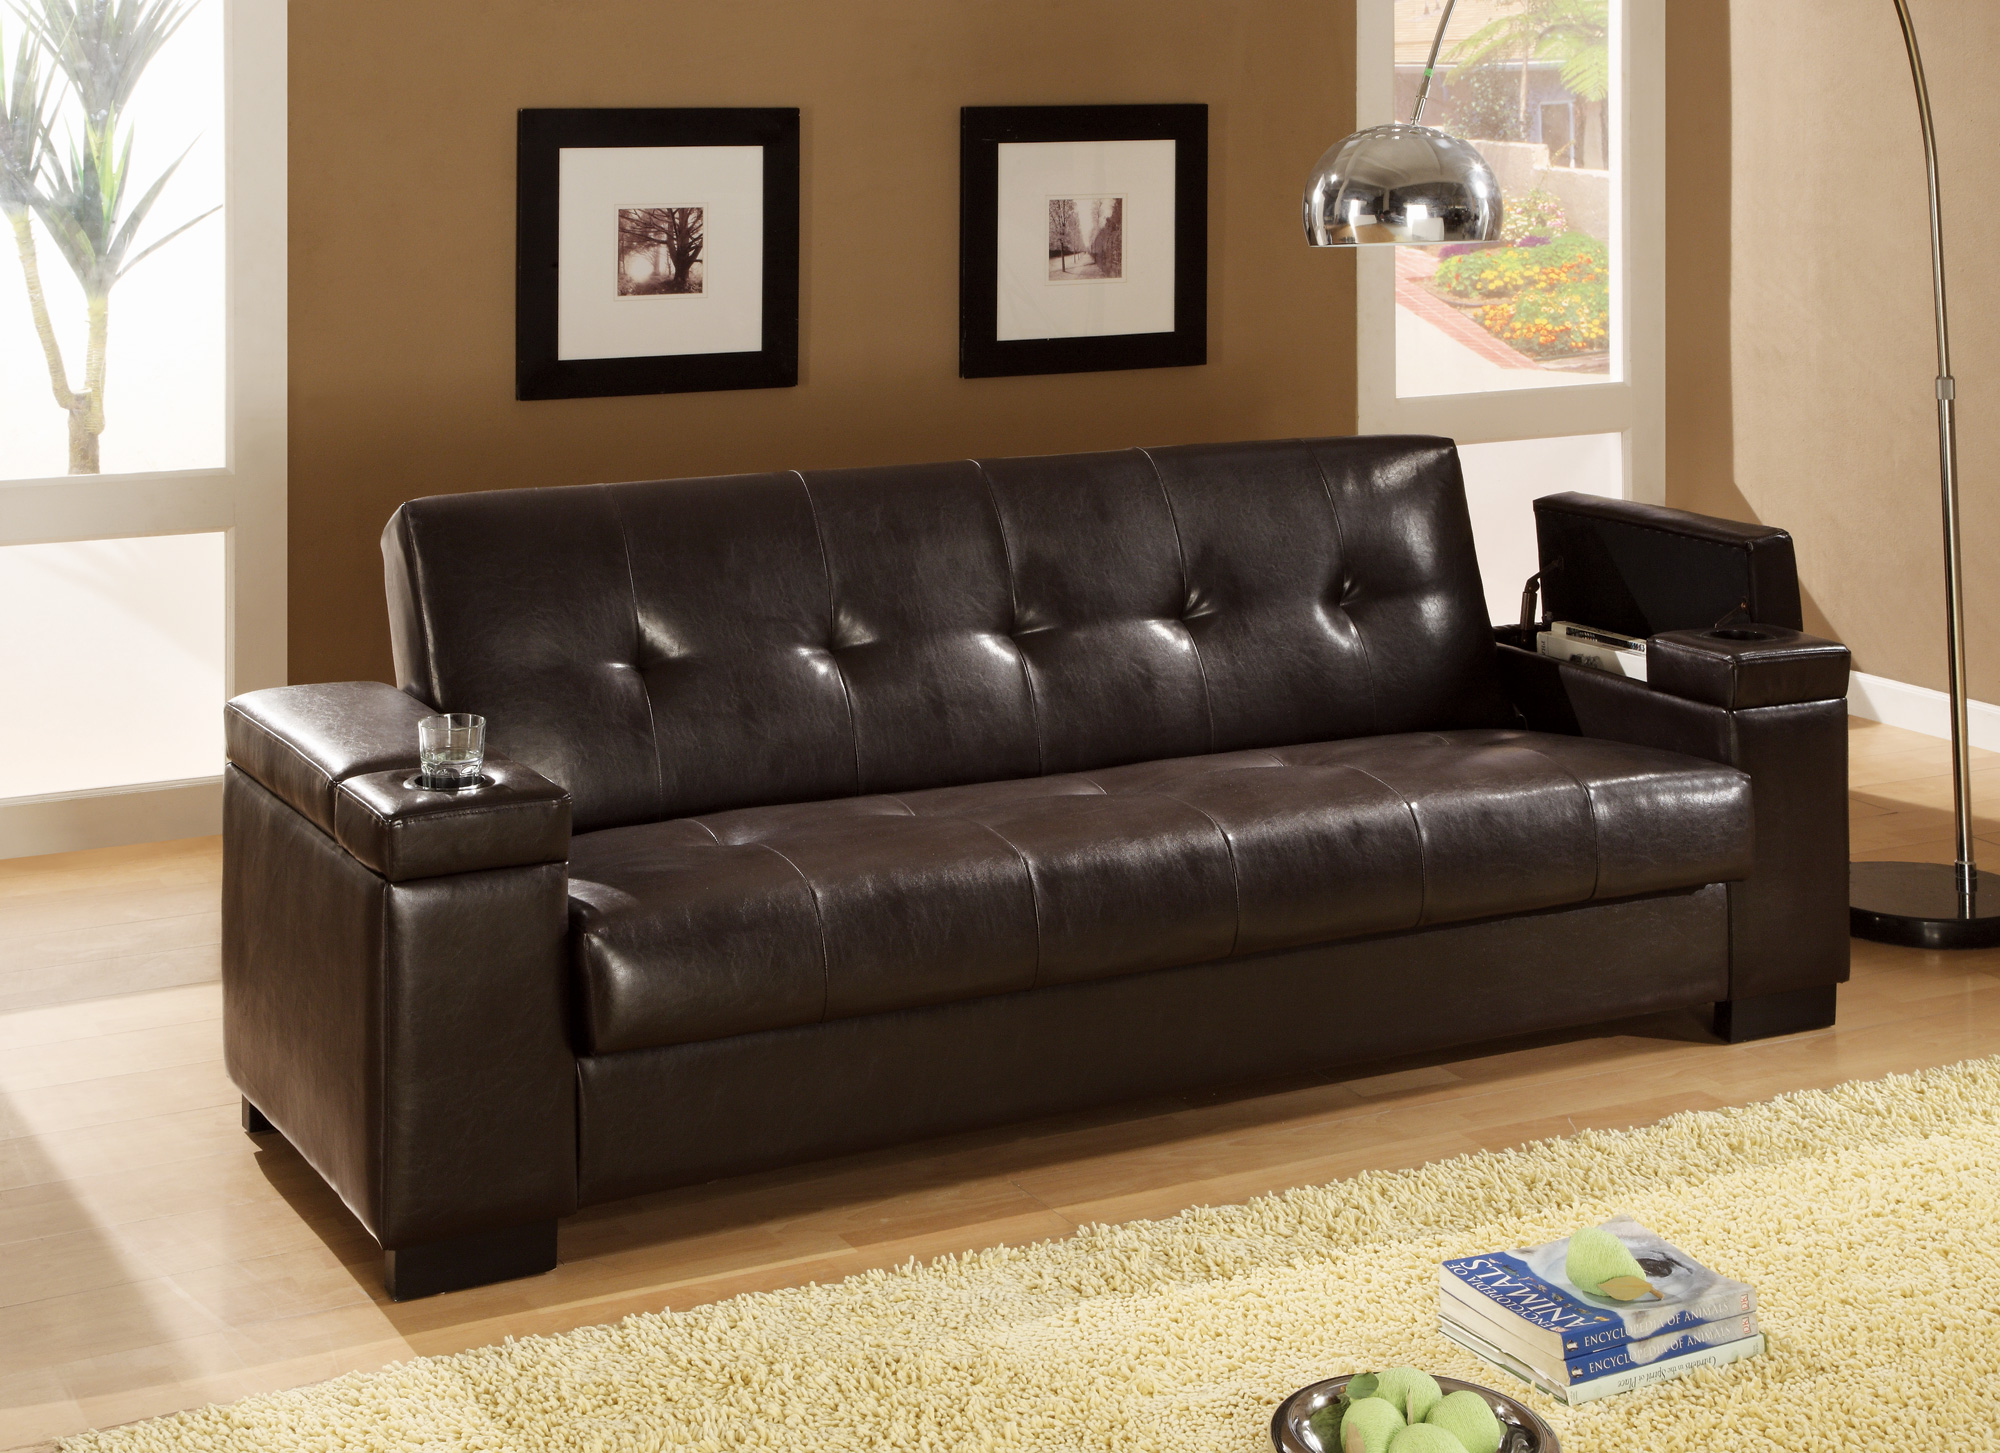 Faux Leather Convertible Sofa Sleeper With Storage 300143 ...